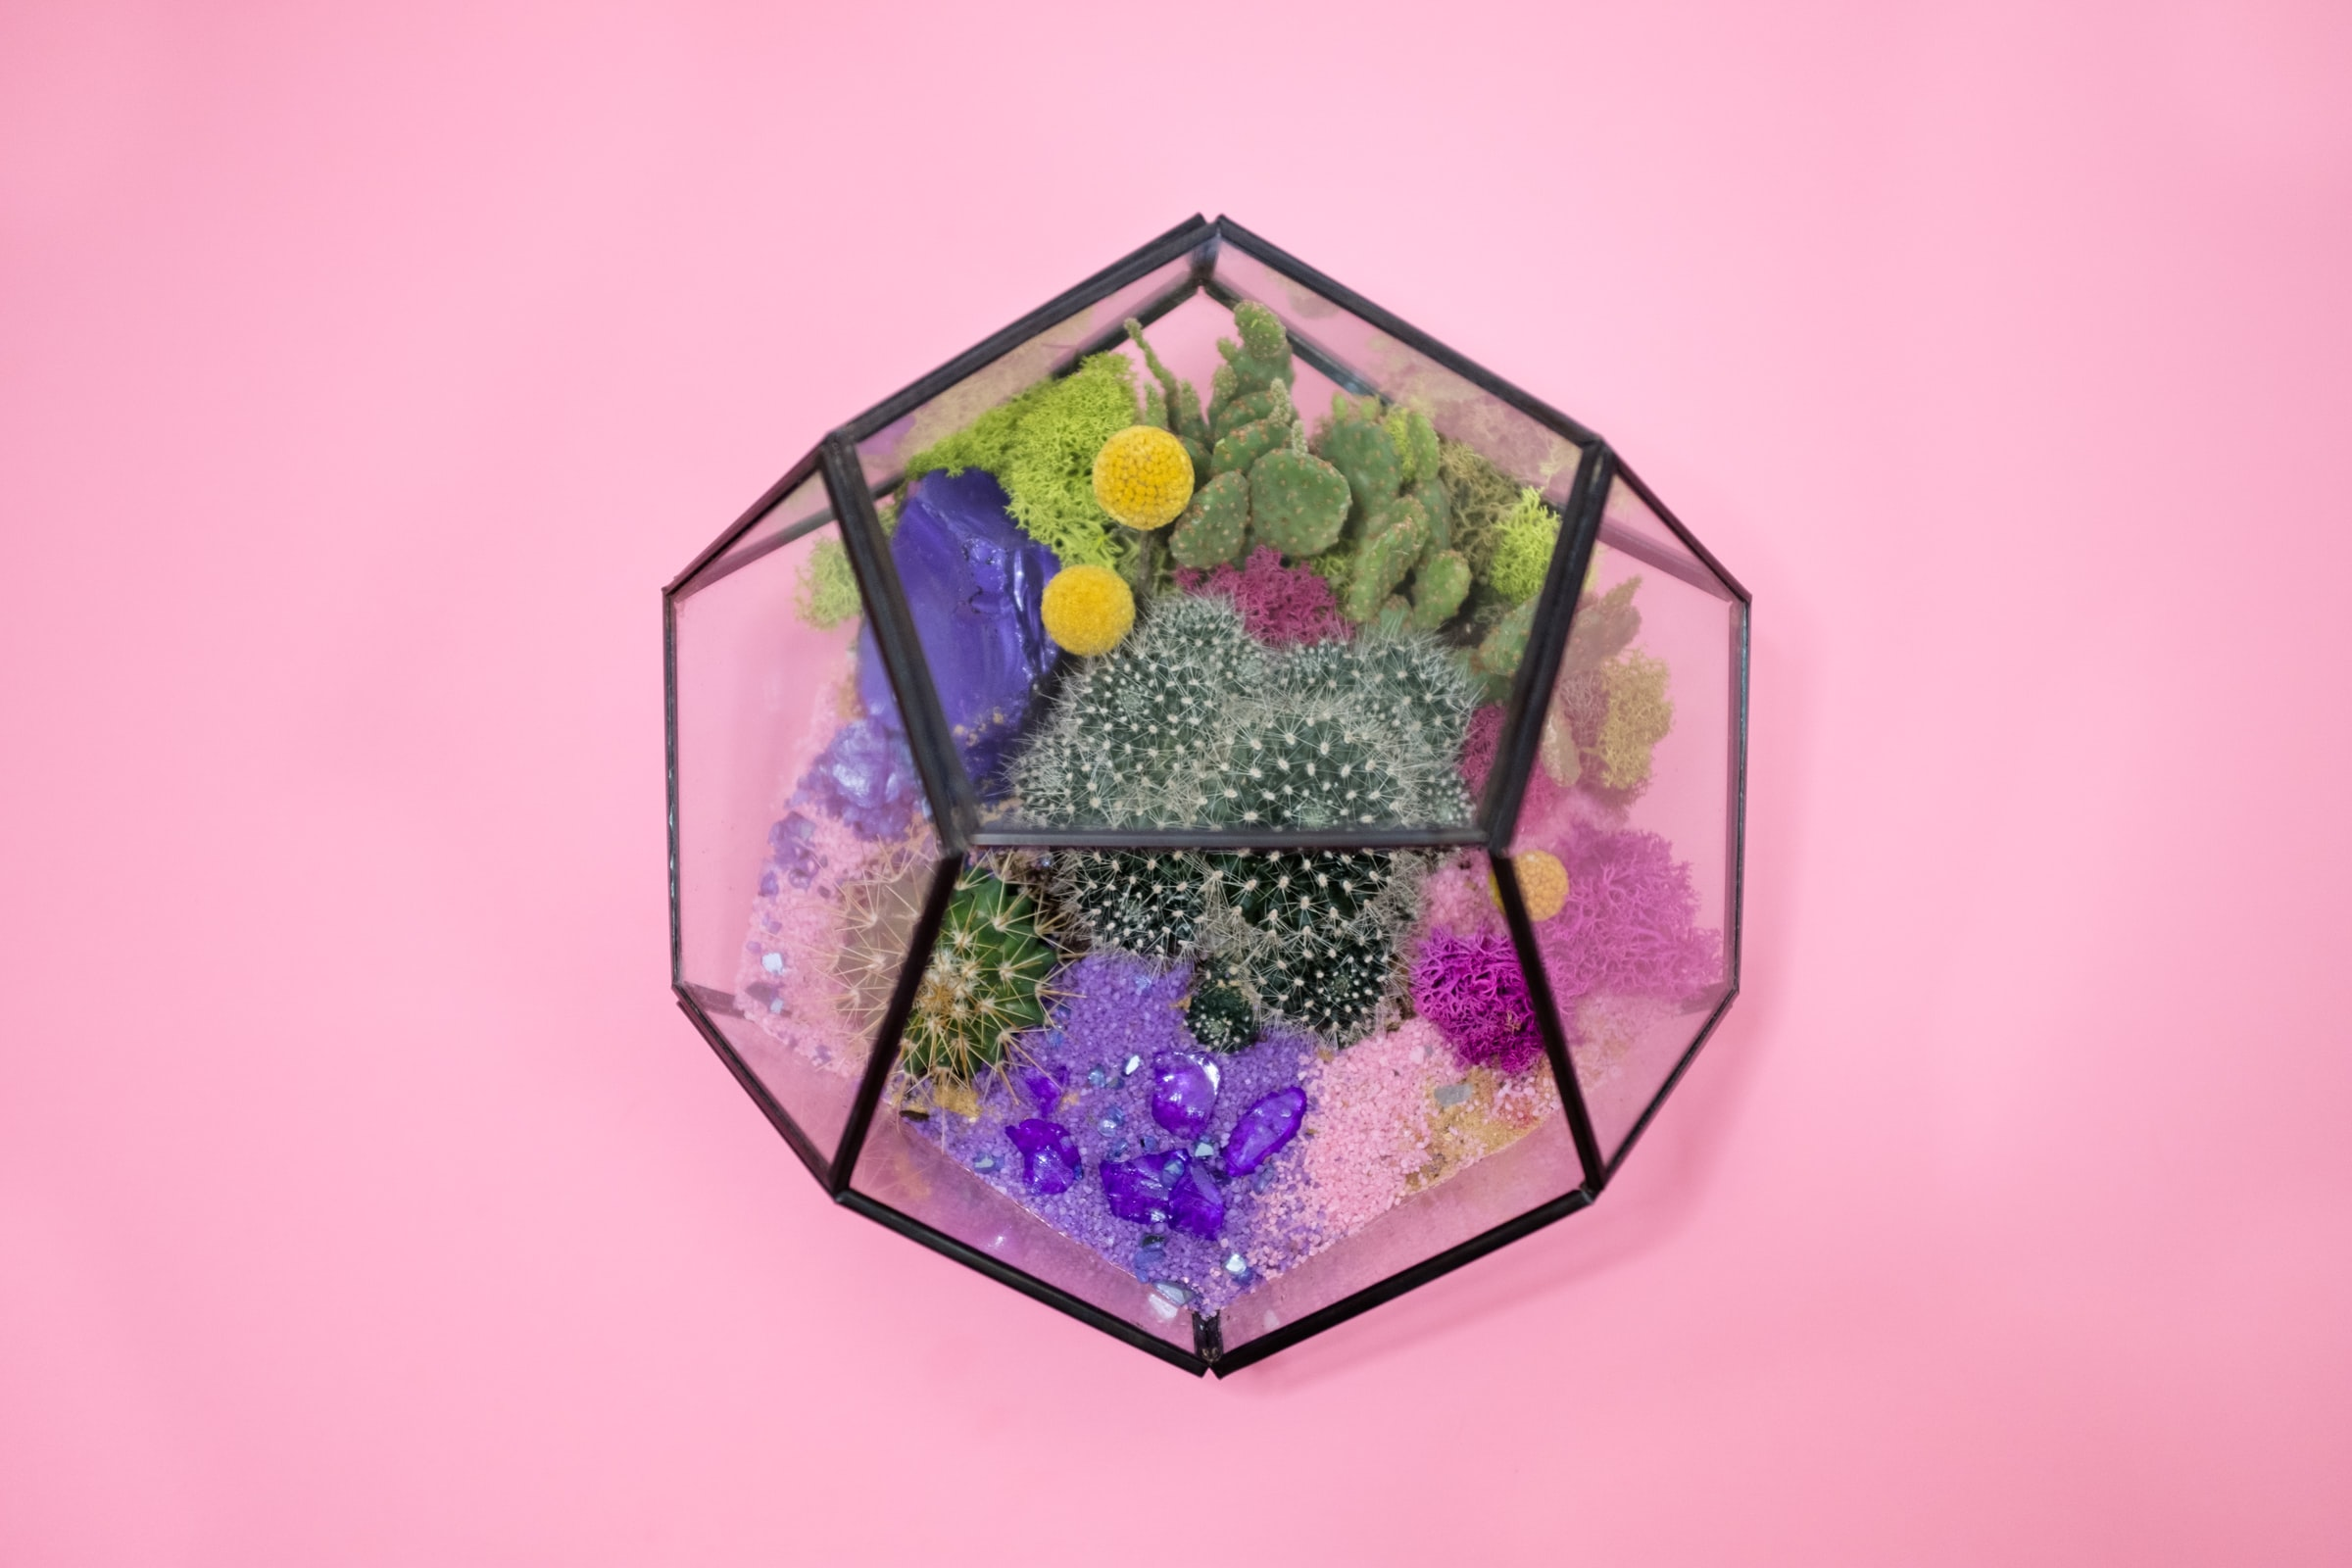 clear glass terrarium on pink surface